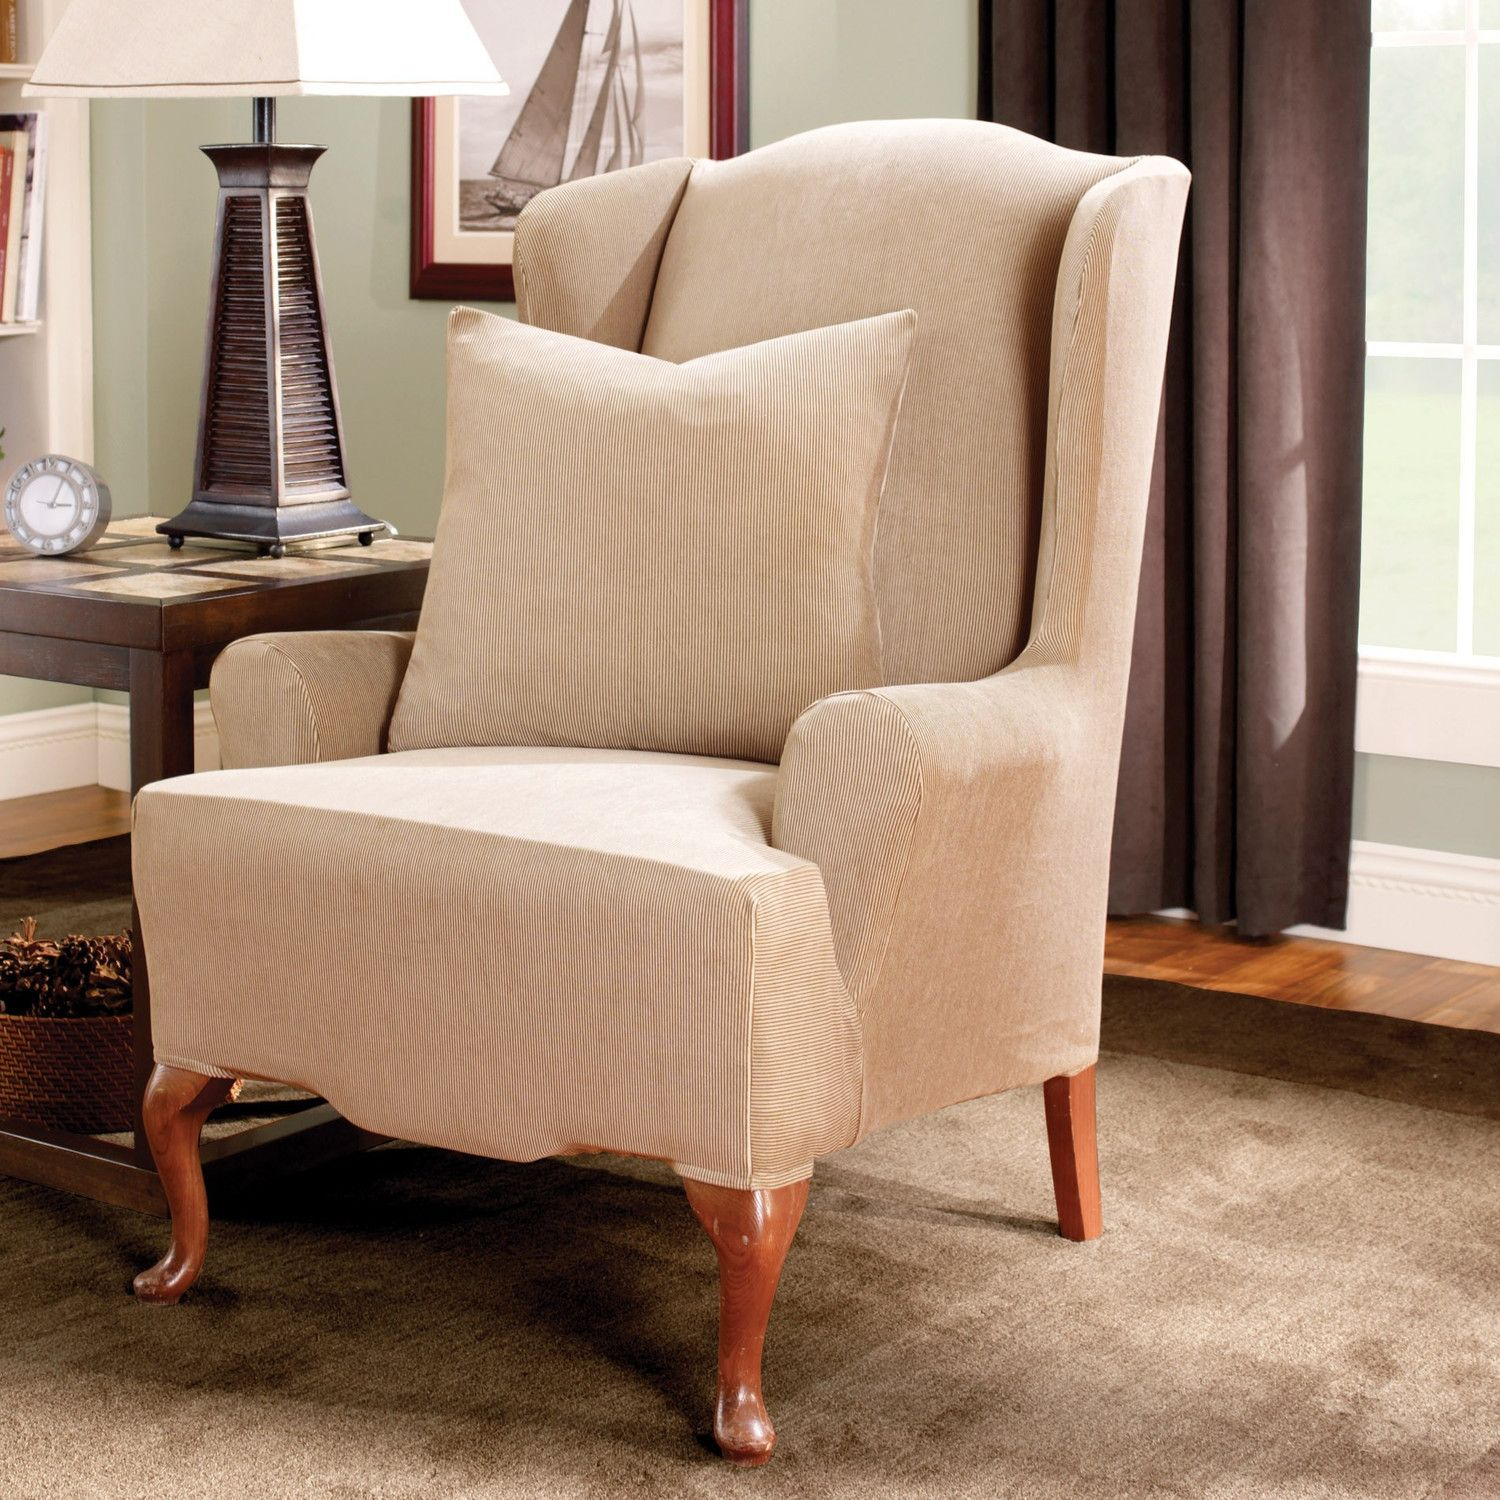 Surprising Sure Fit Wing Chair Slipcover Sure Fit Slipcovers Machost Co Dining Chair Design Ideas Machostcouk